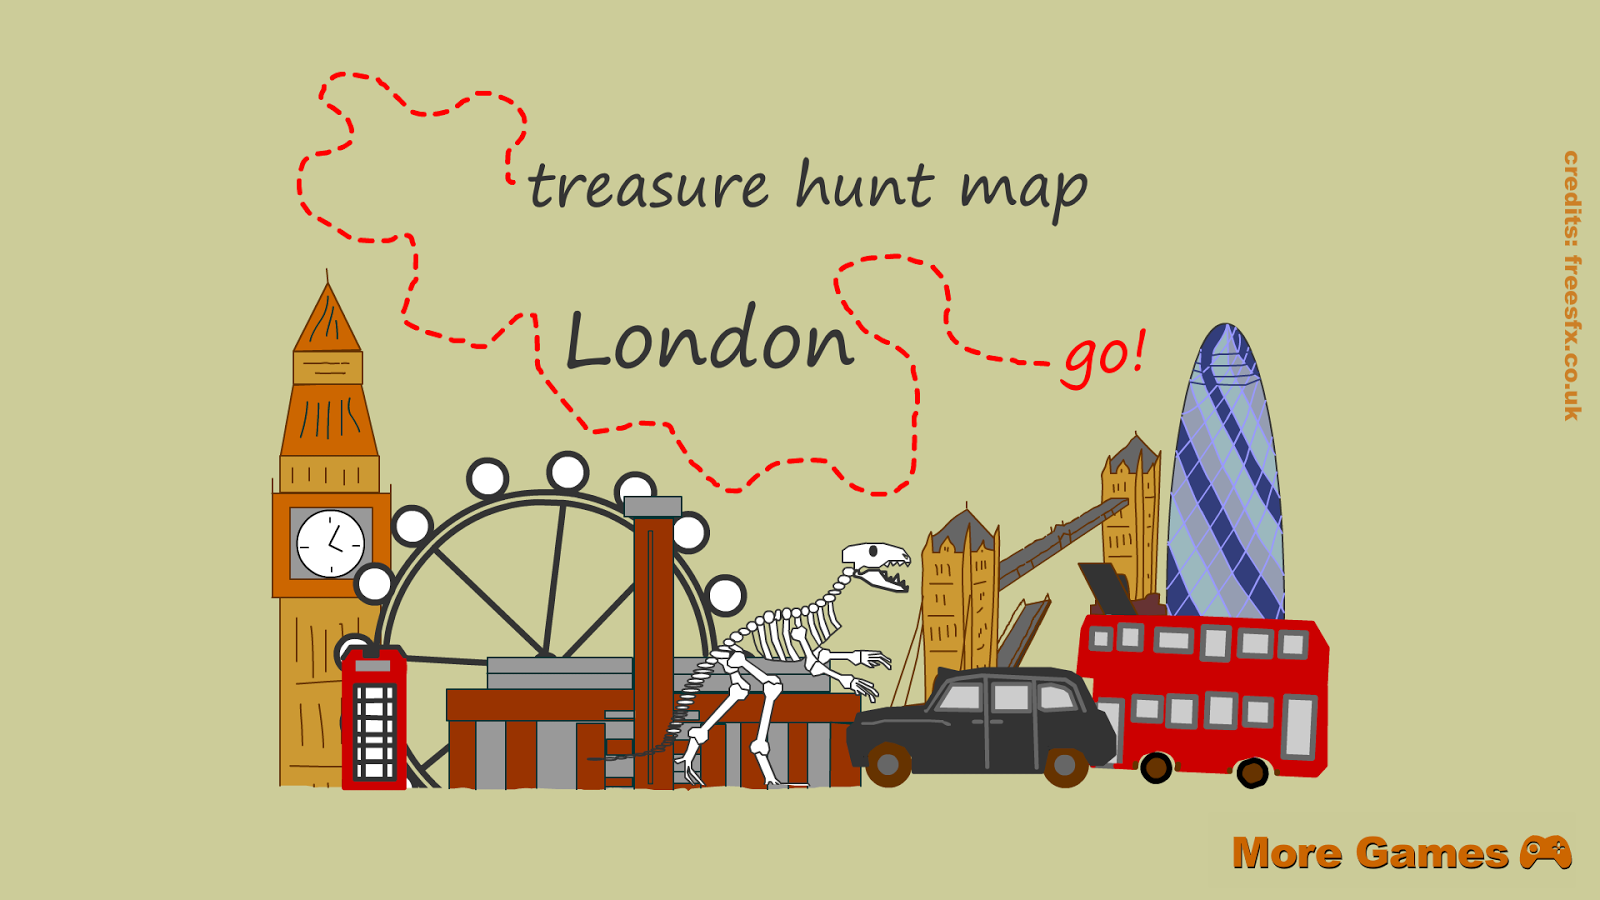 London Treasure Hunt Map- ekran görüntüsü - Treasure Hunt PNG HD